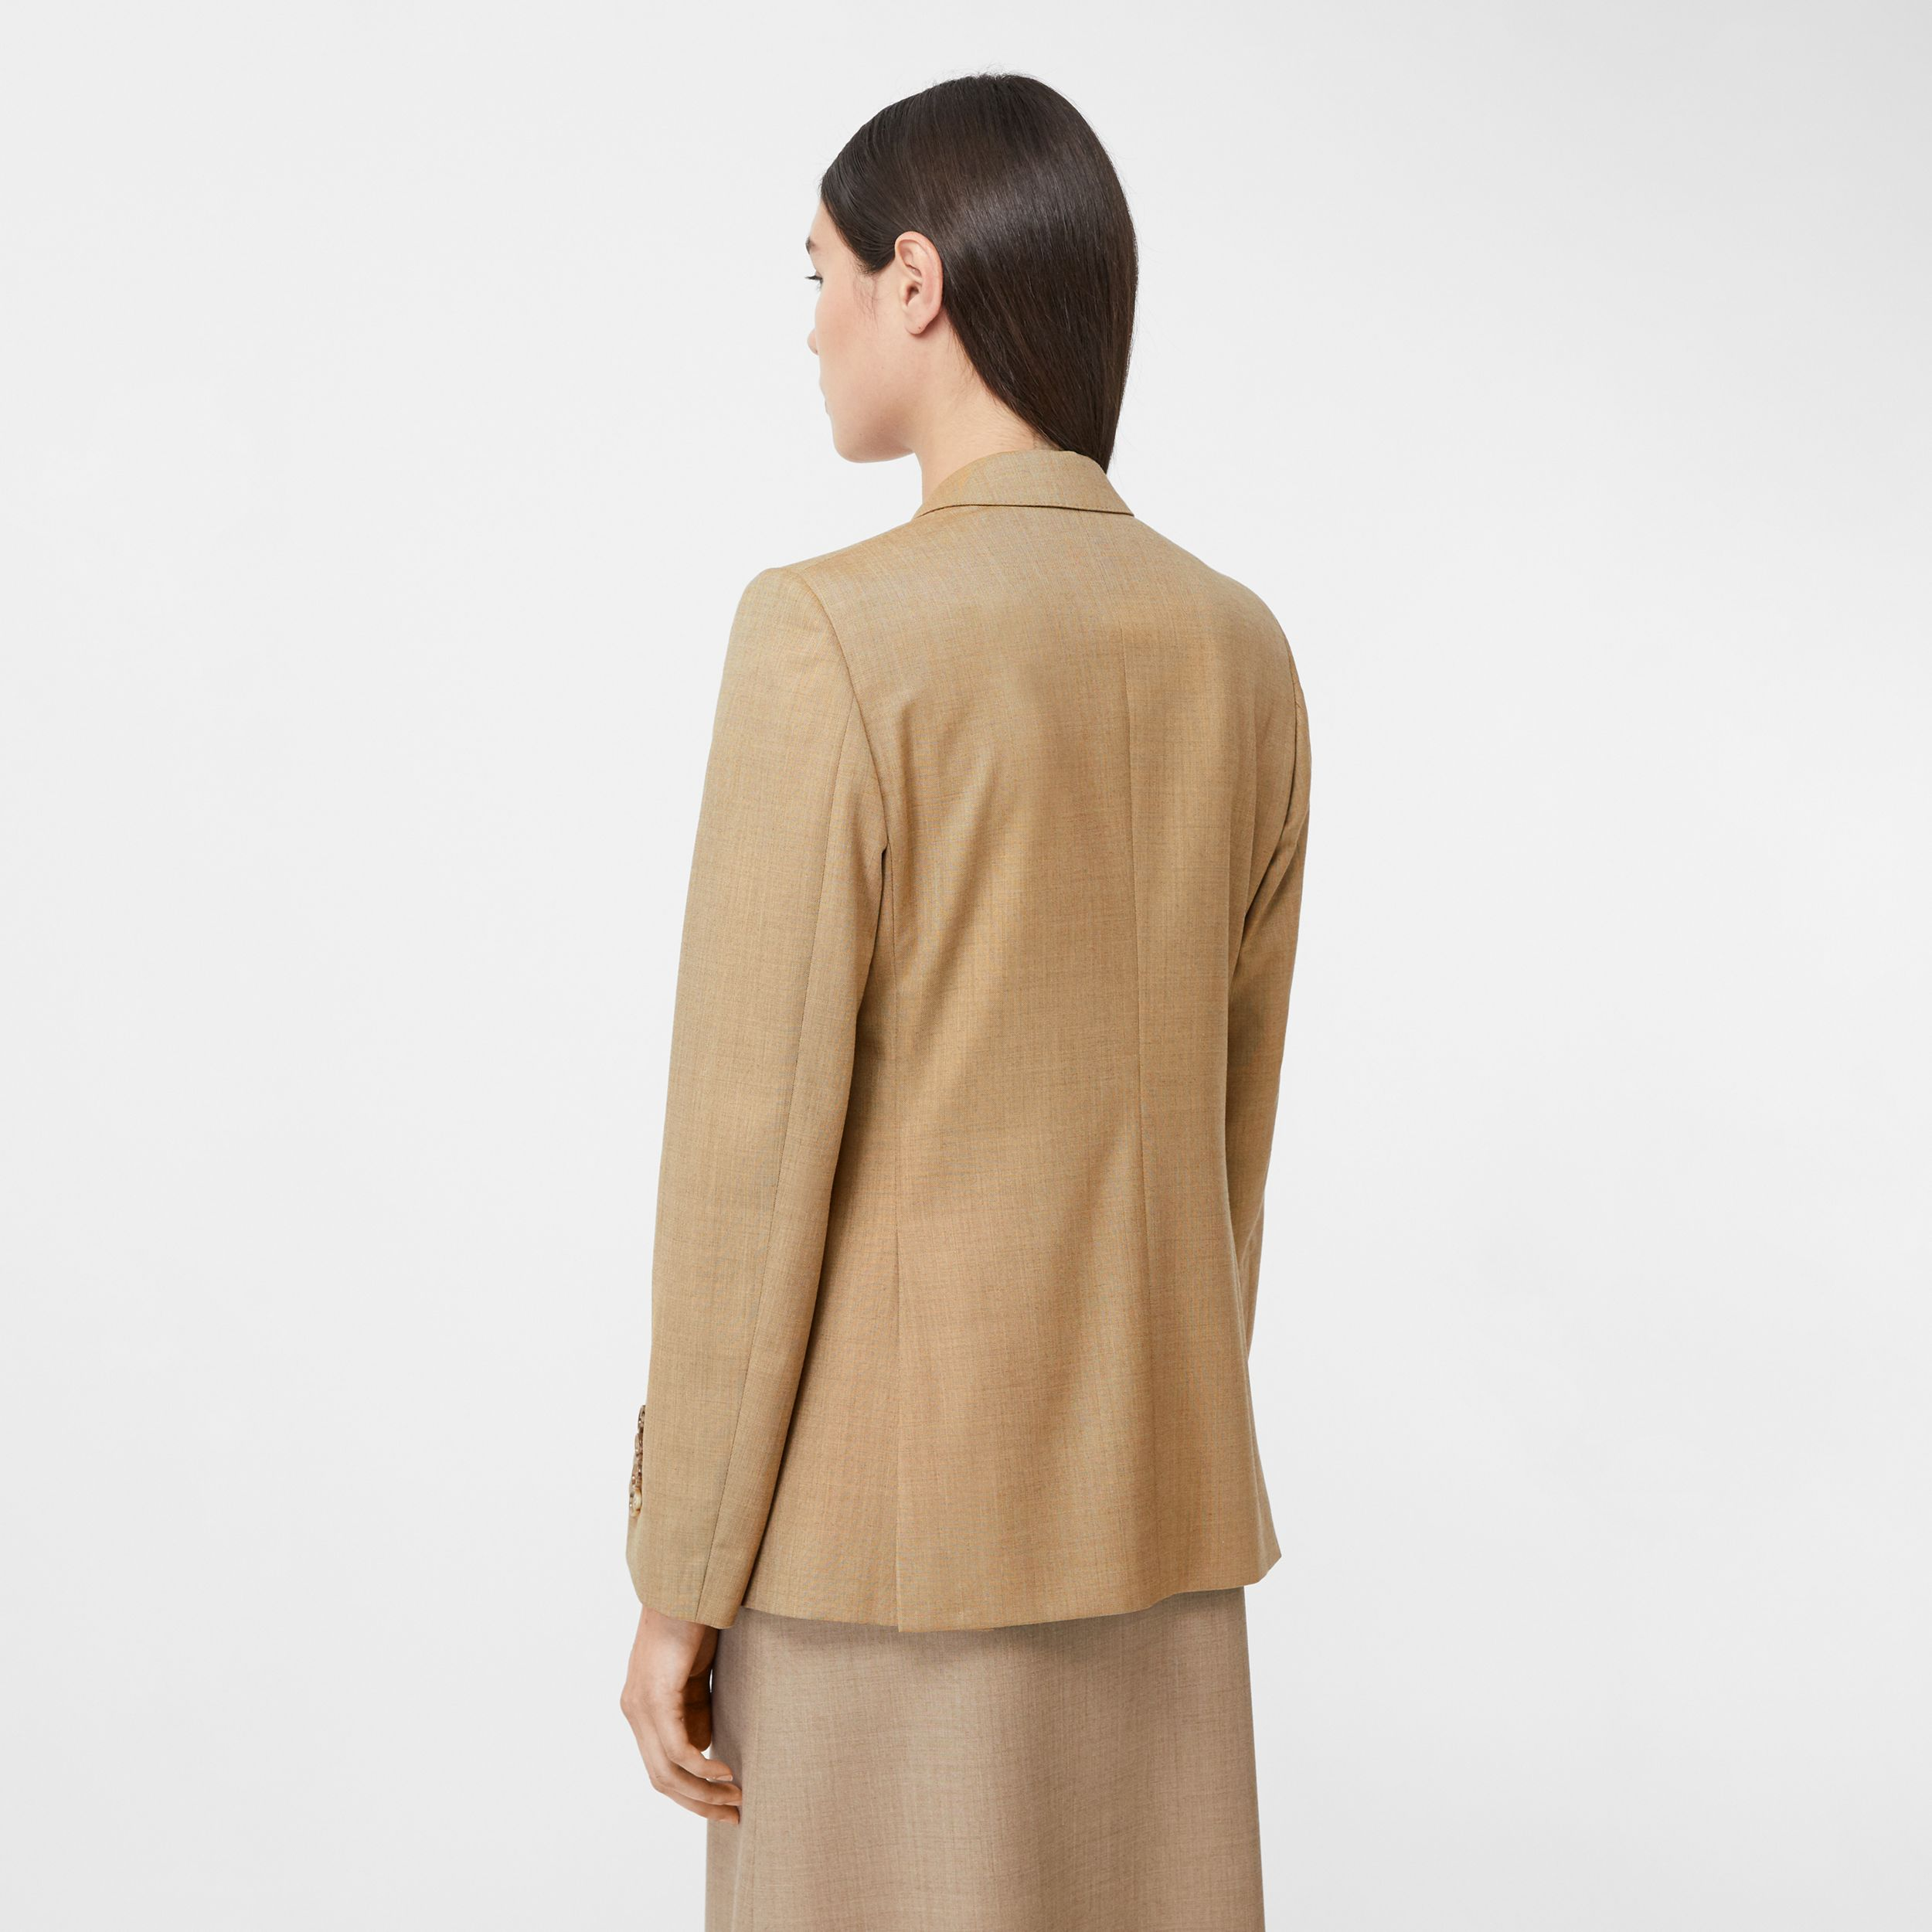 Link Detail Wool Cashmere Blazer in Pecan Melange - Women | Burberry - 3